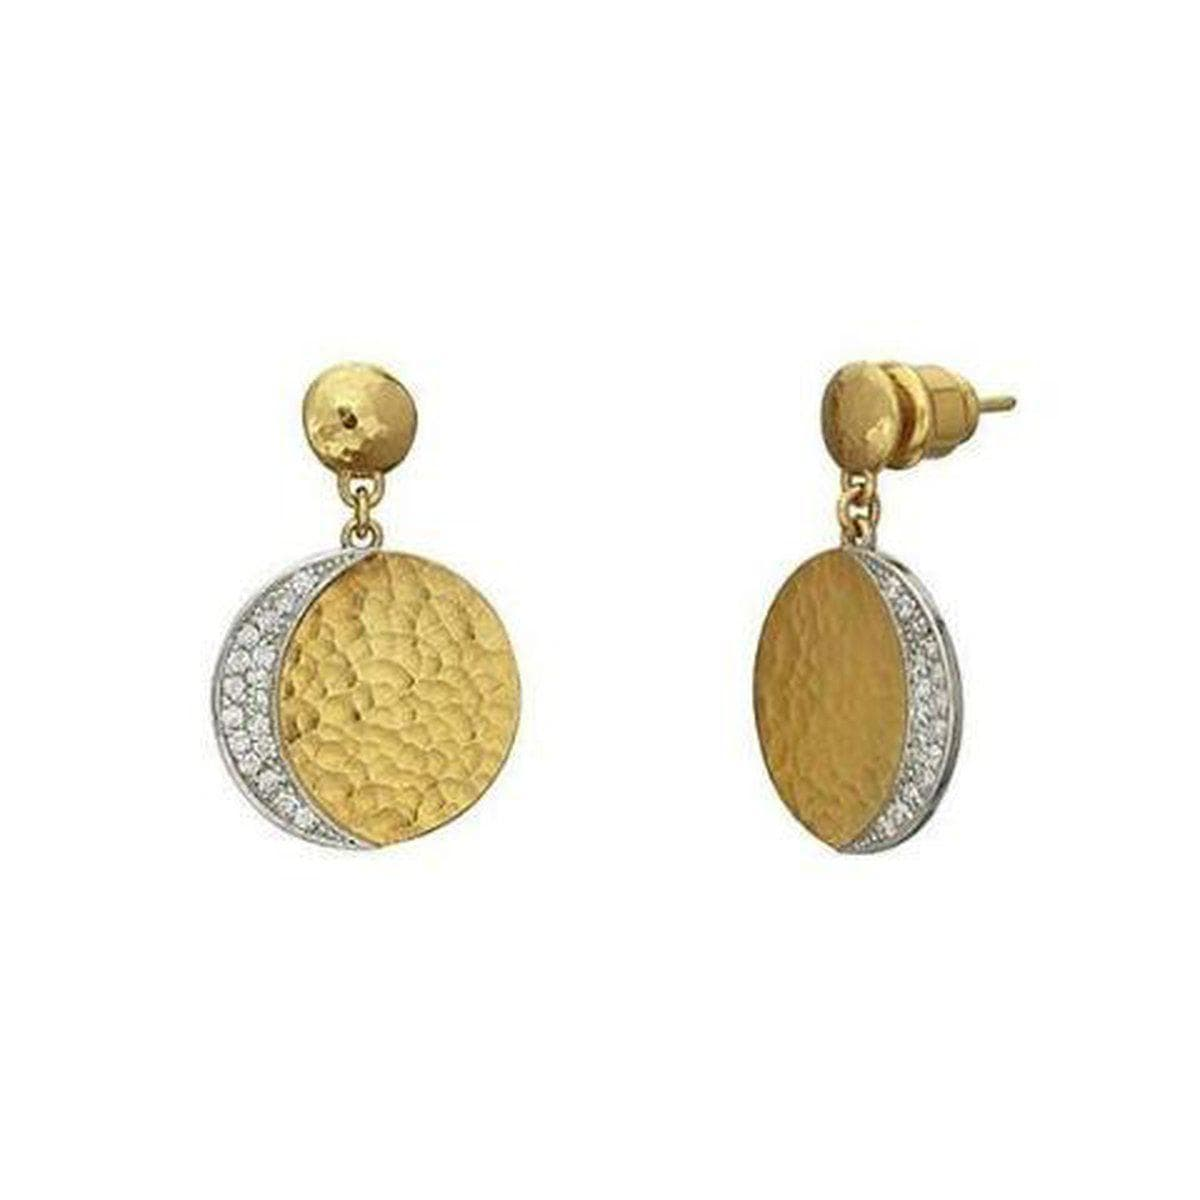 Mango 24K Gold White Diamond Earrings - LTE-LSPV-RD18-DI-GURHAN-Renee Taylor Gallery